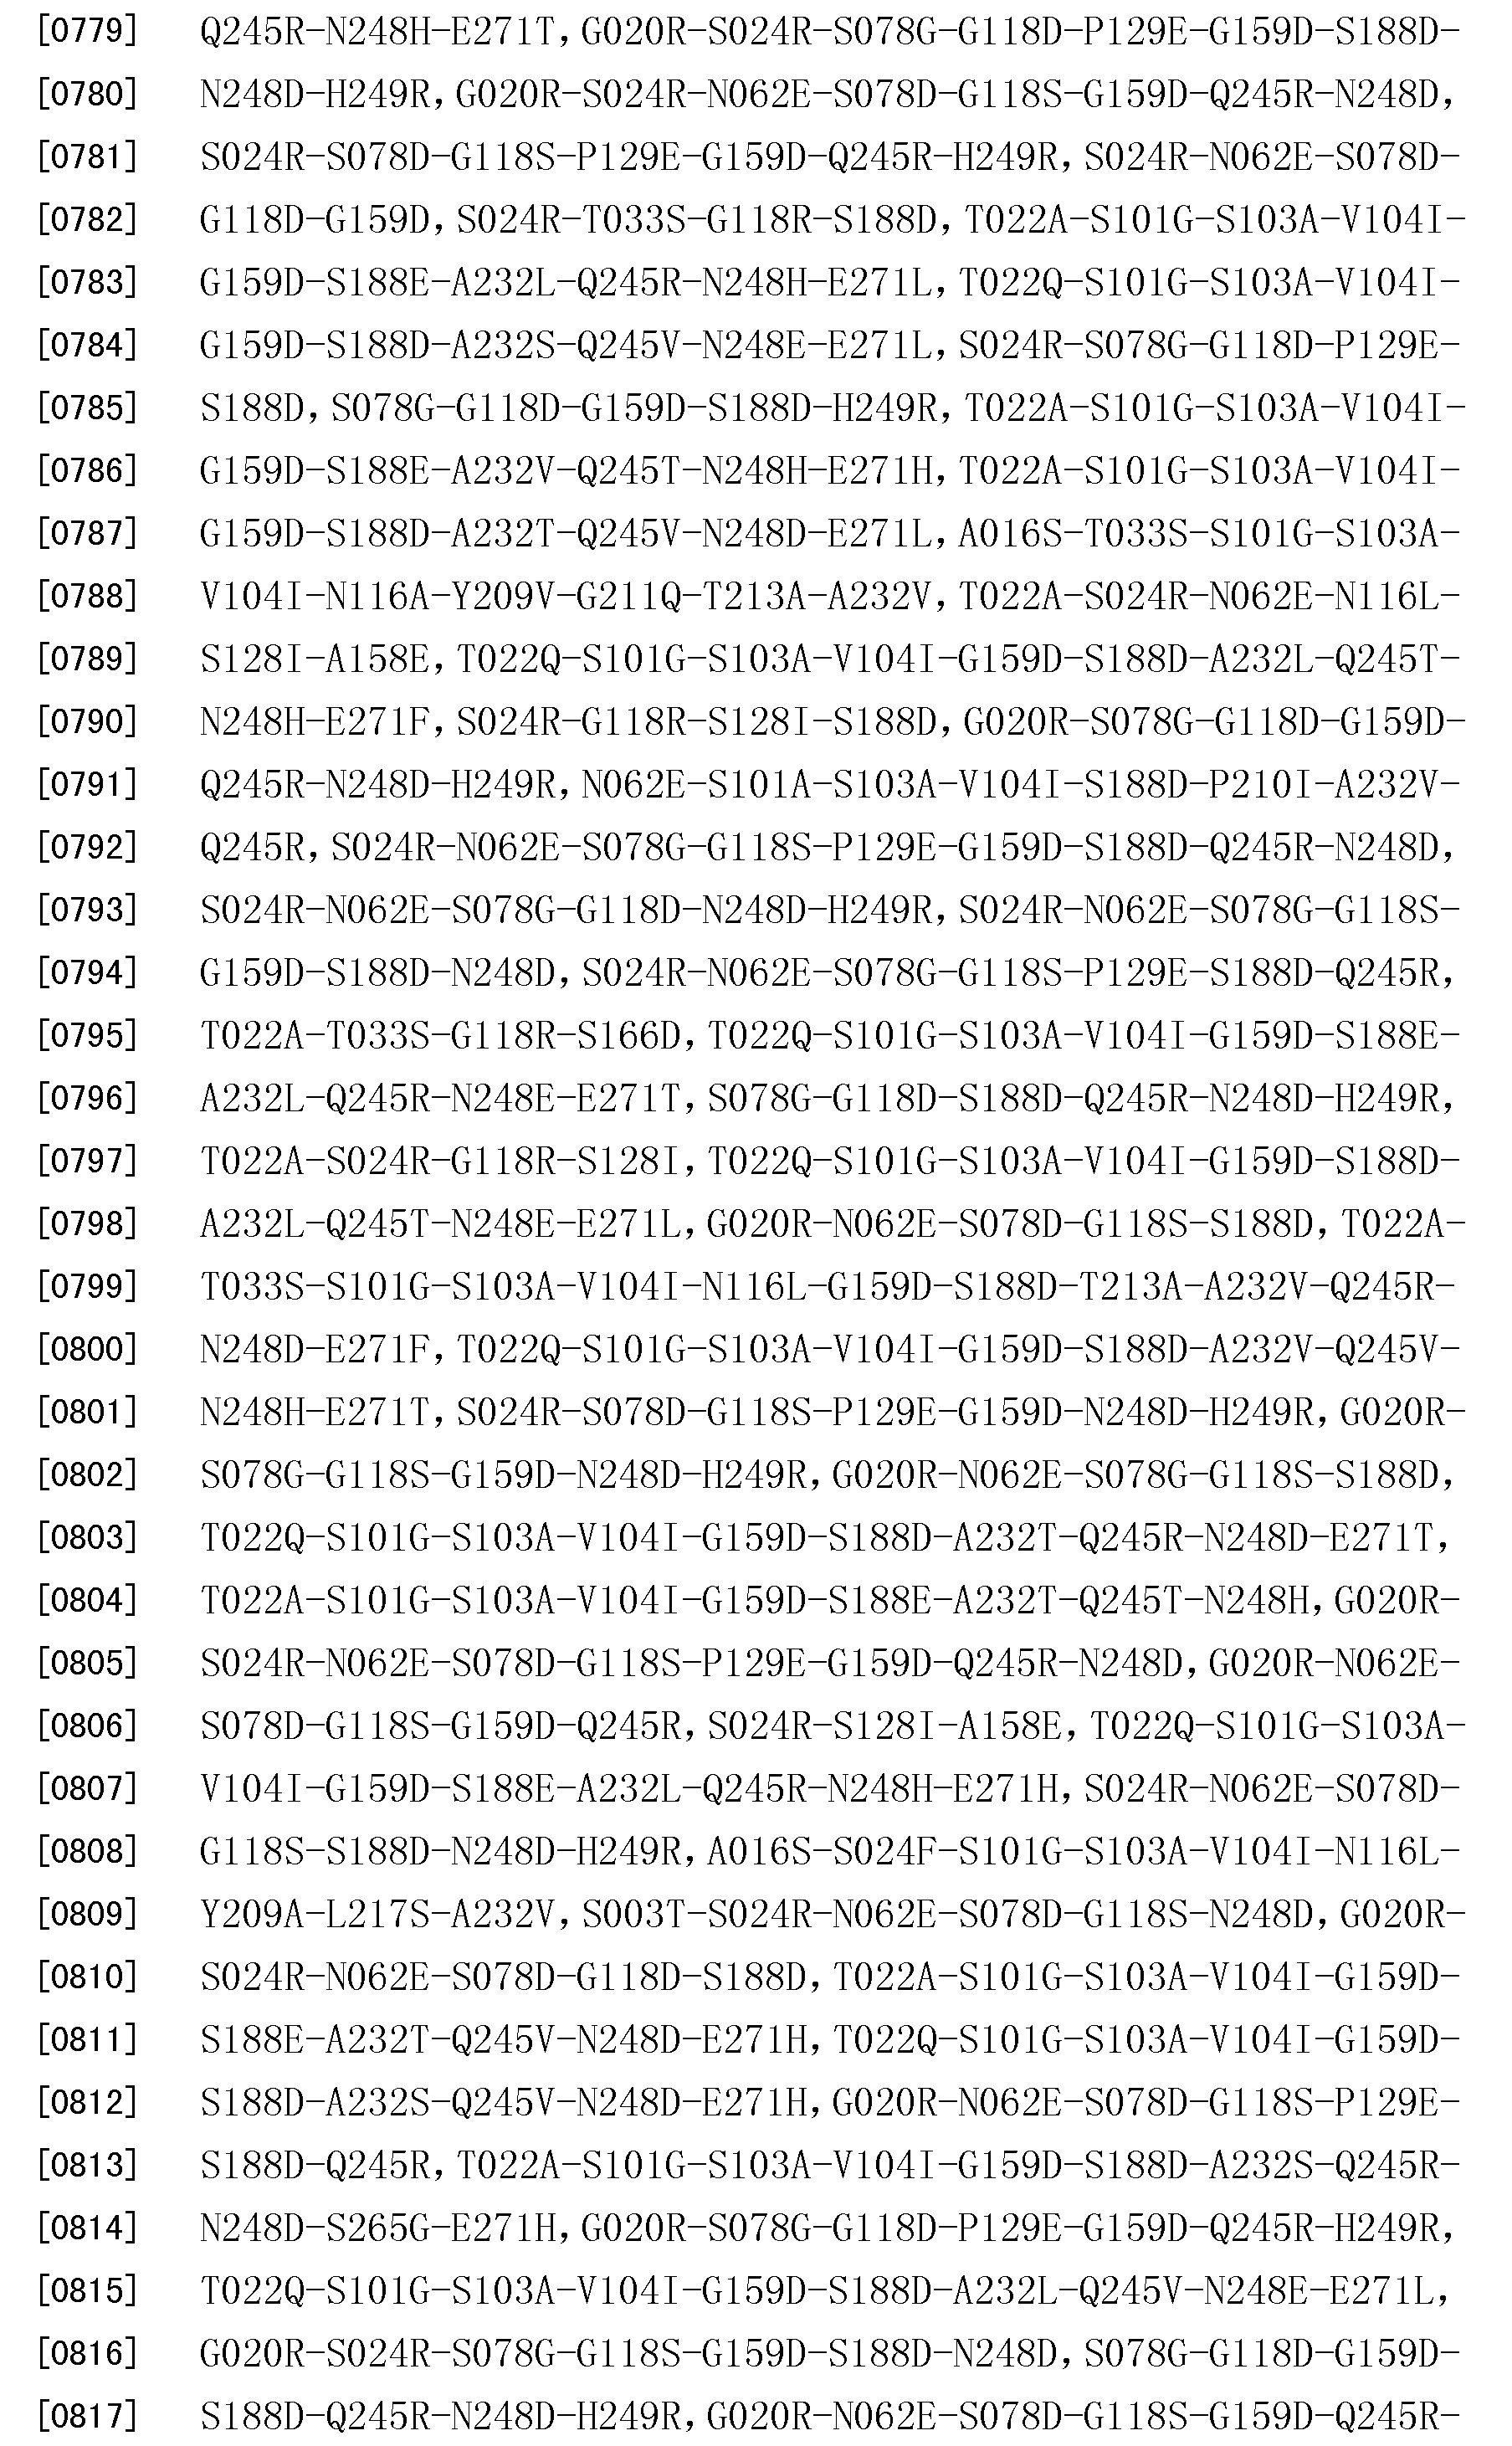 Cn103502446a Compositions And Methods Comprising Serine Protease 10 Digit 0816 Figure Cn103502446ad02311